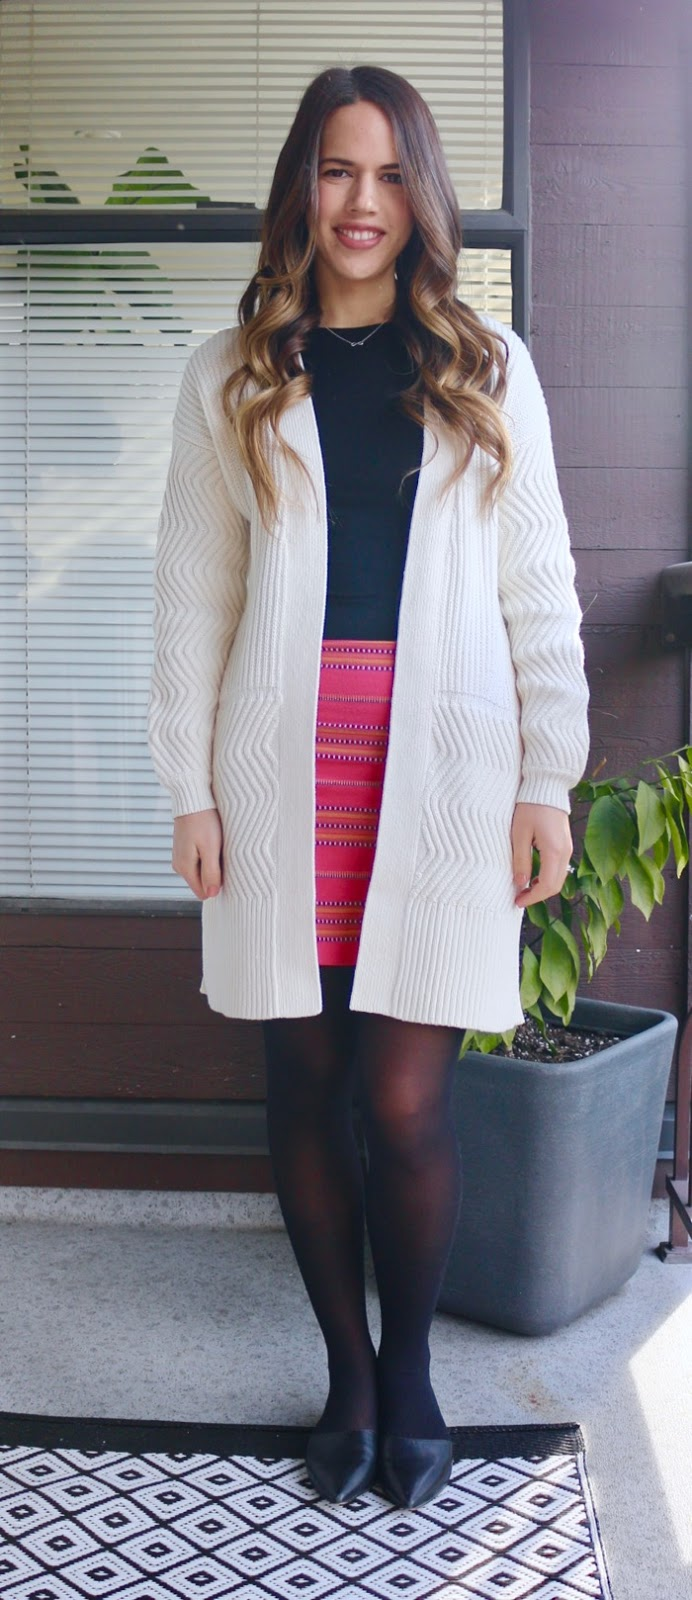 Jules in Flats - Open Front Sweater with Mini Skirt for Work